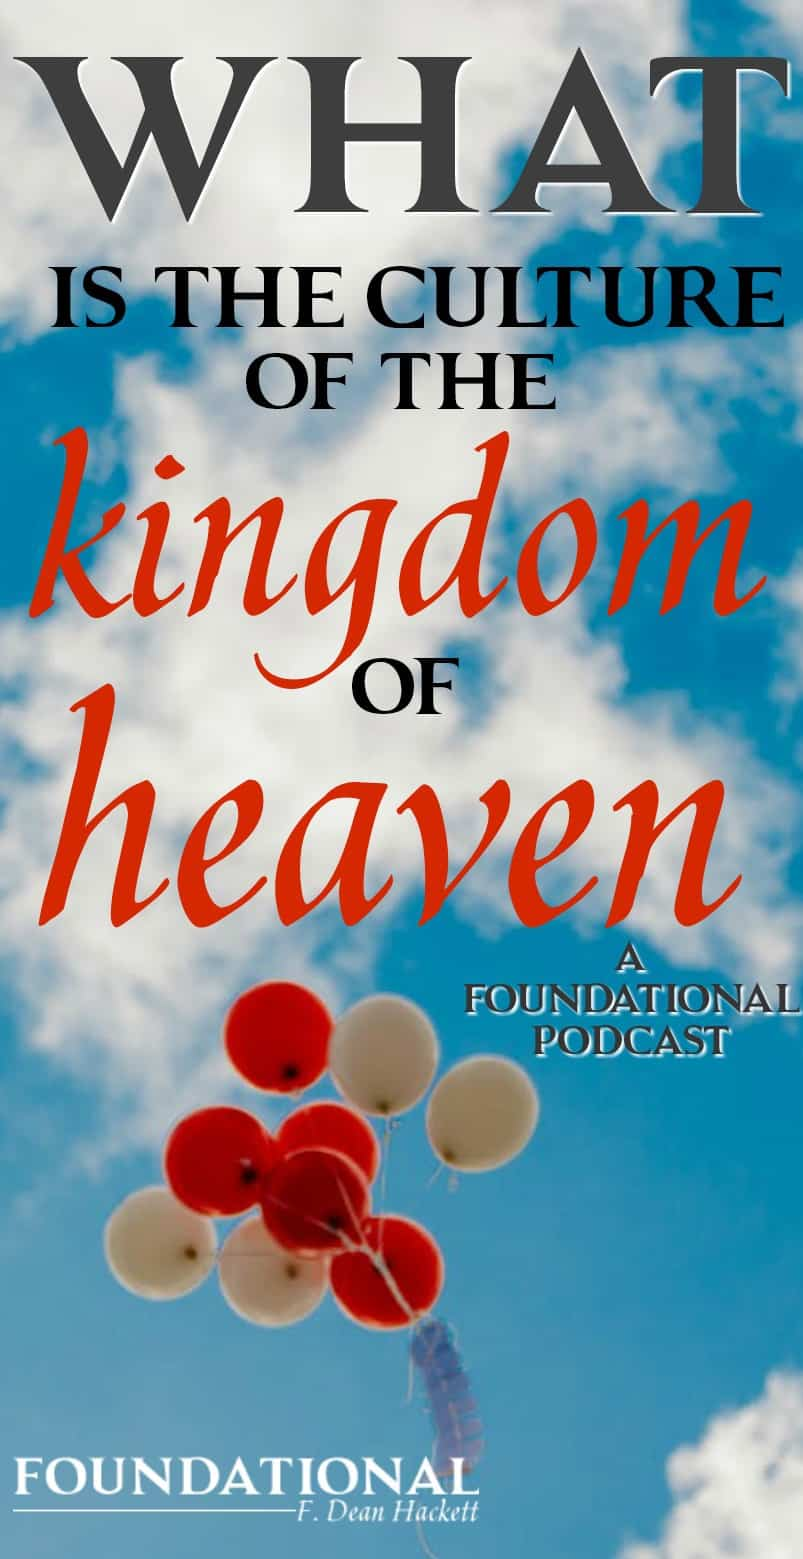 What is the culture of the Kingdom of Heaven? Jesus gave us authority to do miracles, signs and wonders in His name, to bring the culture of heaven to earth. Foundational   F Dean Hackett   Christianity   Christian living   Christian blog   Christian faith   Kingdom of Heaven   Miracles   Signs and Wonders   #christianblog #christianfaith #spiritualgrowth #Bible #God #miracles #signsandwonders